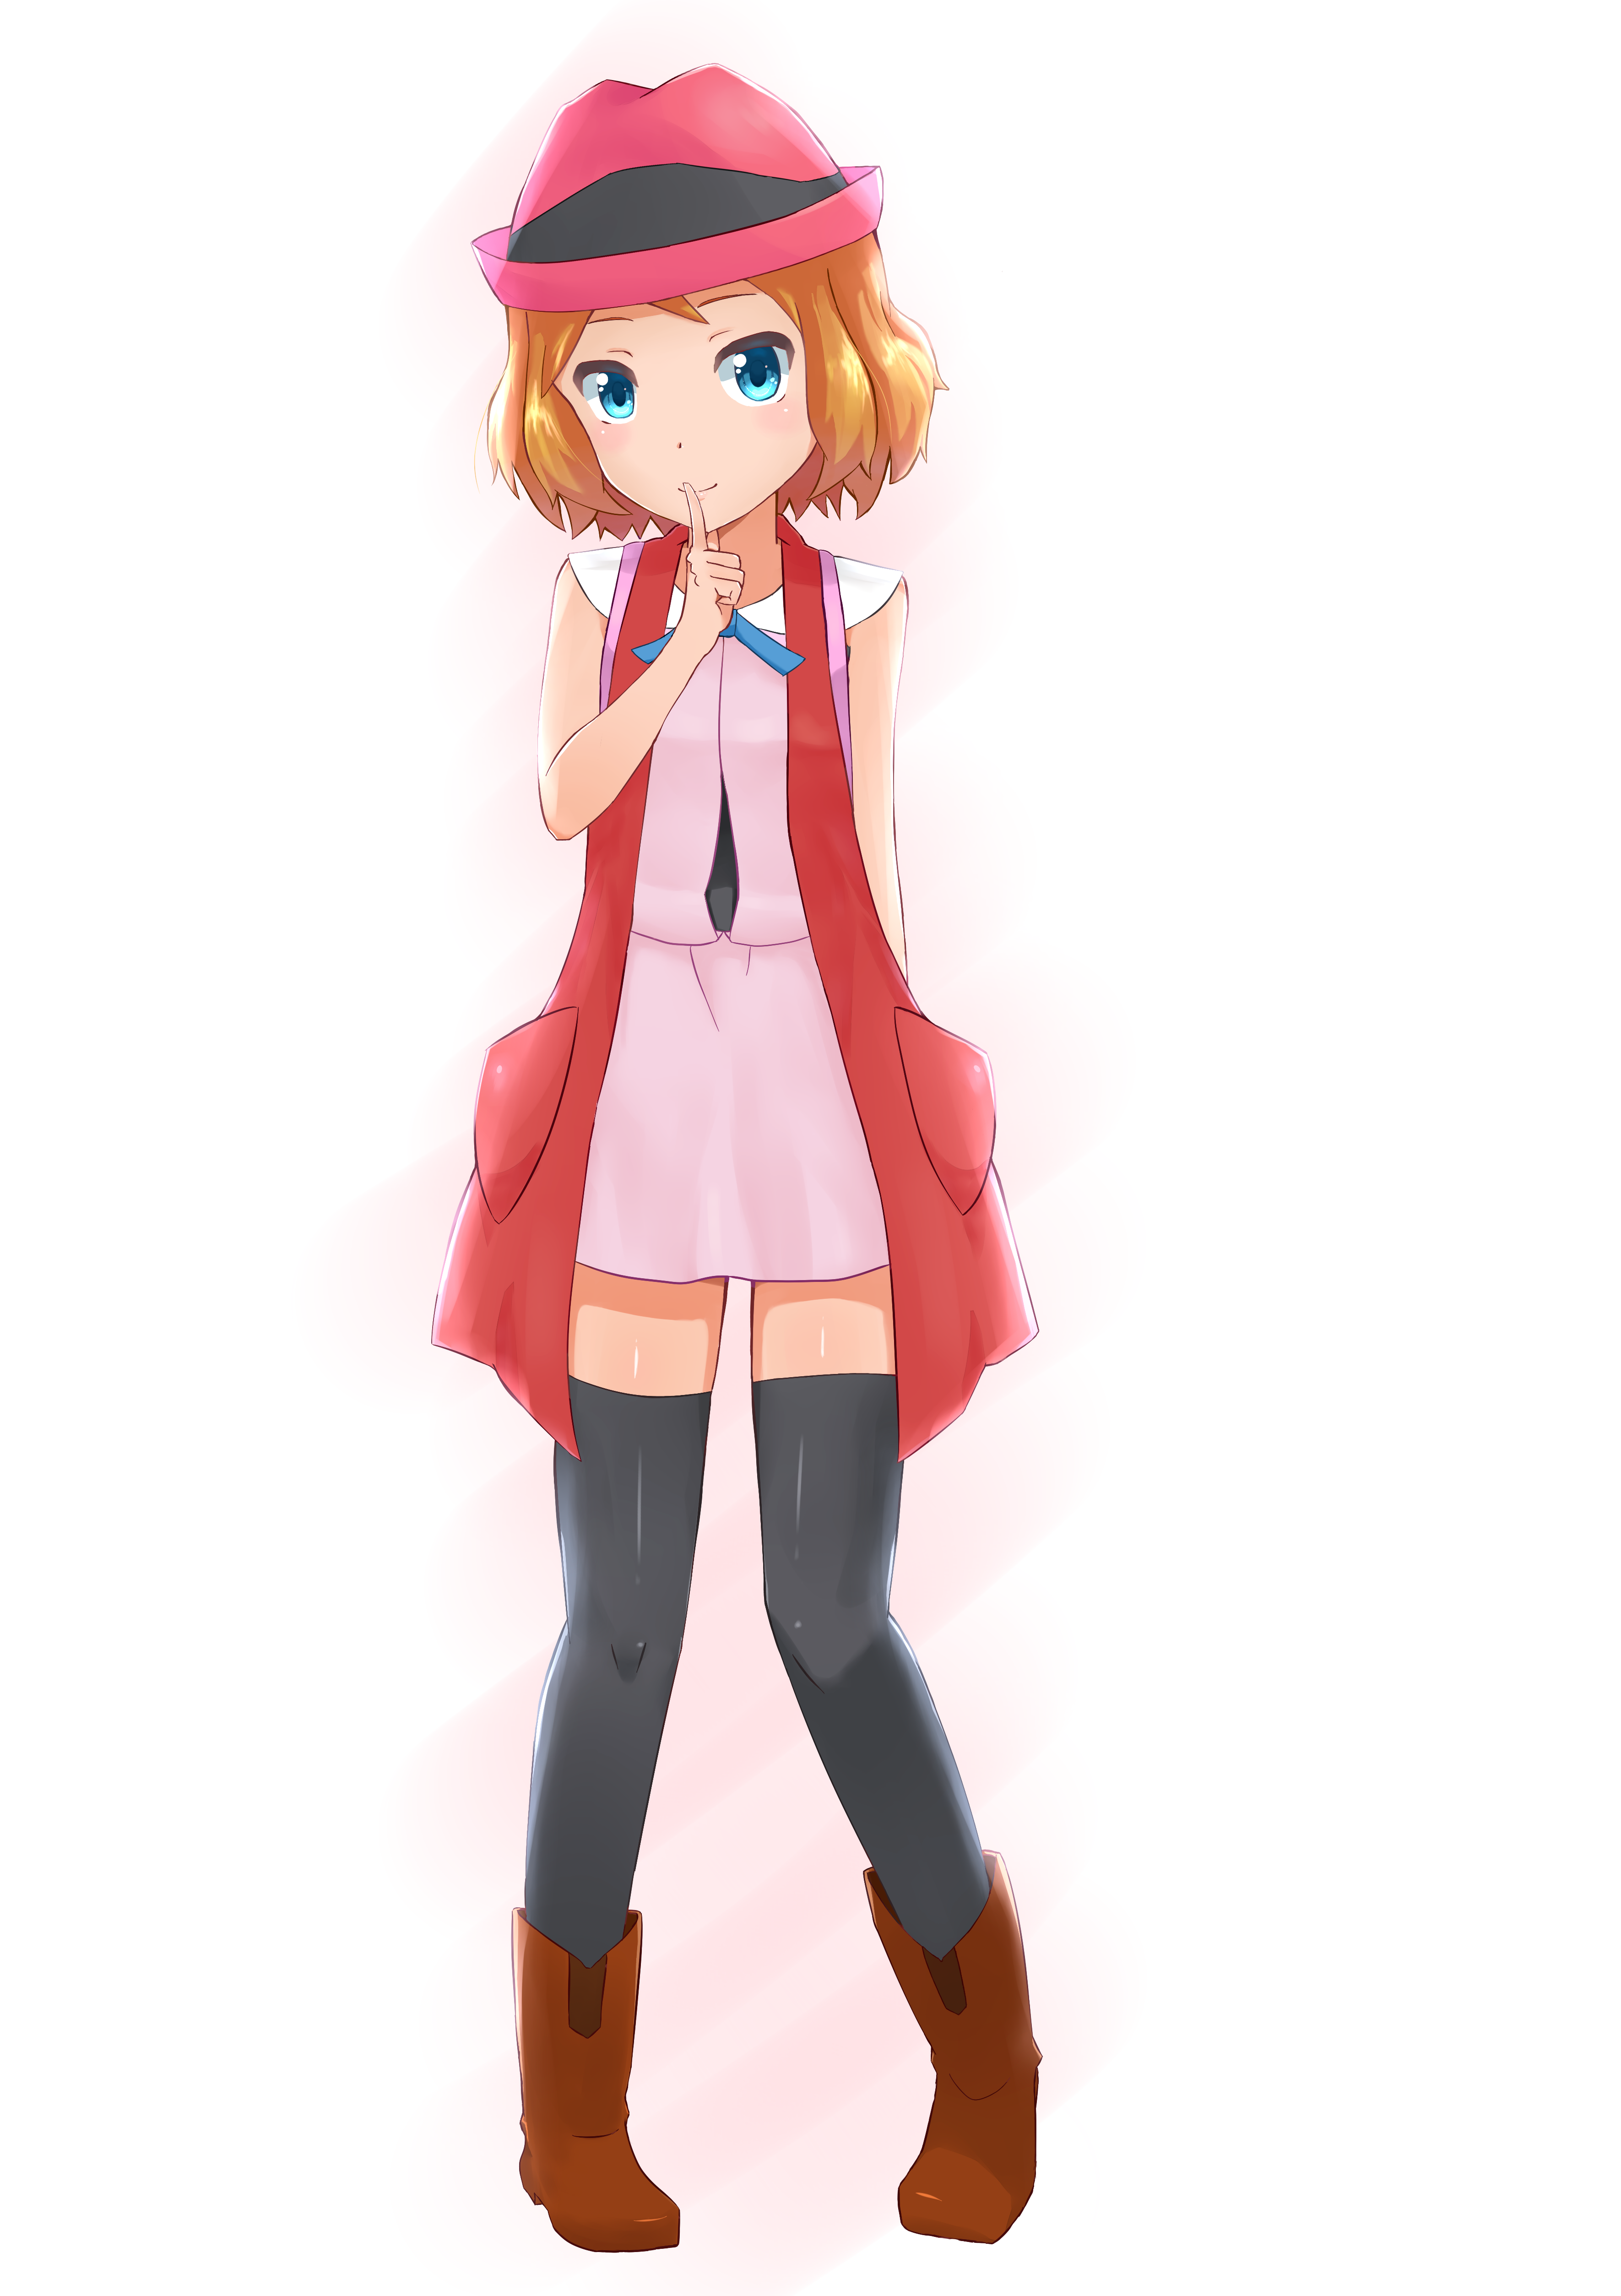 Serena With Long Hair by PerryWhite on DeviantArt